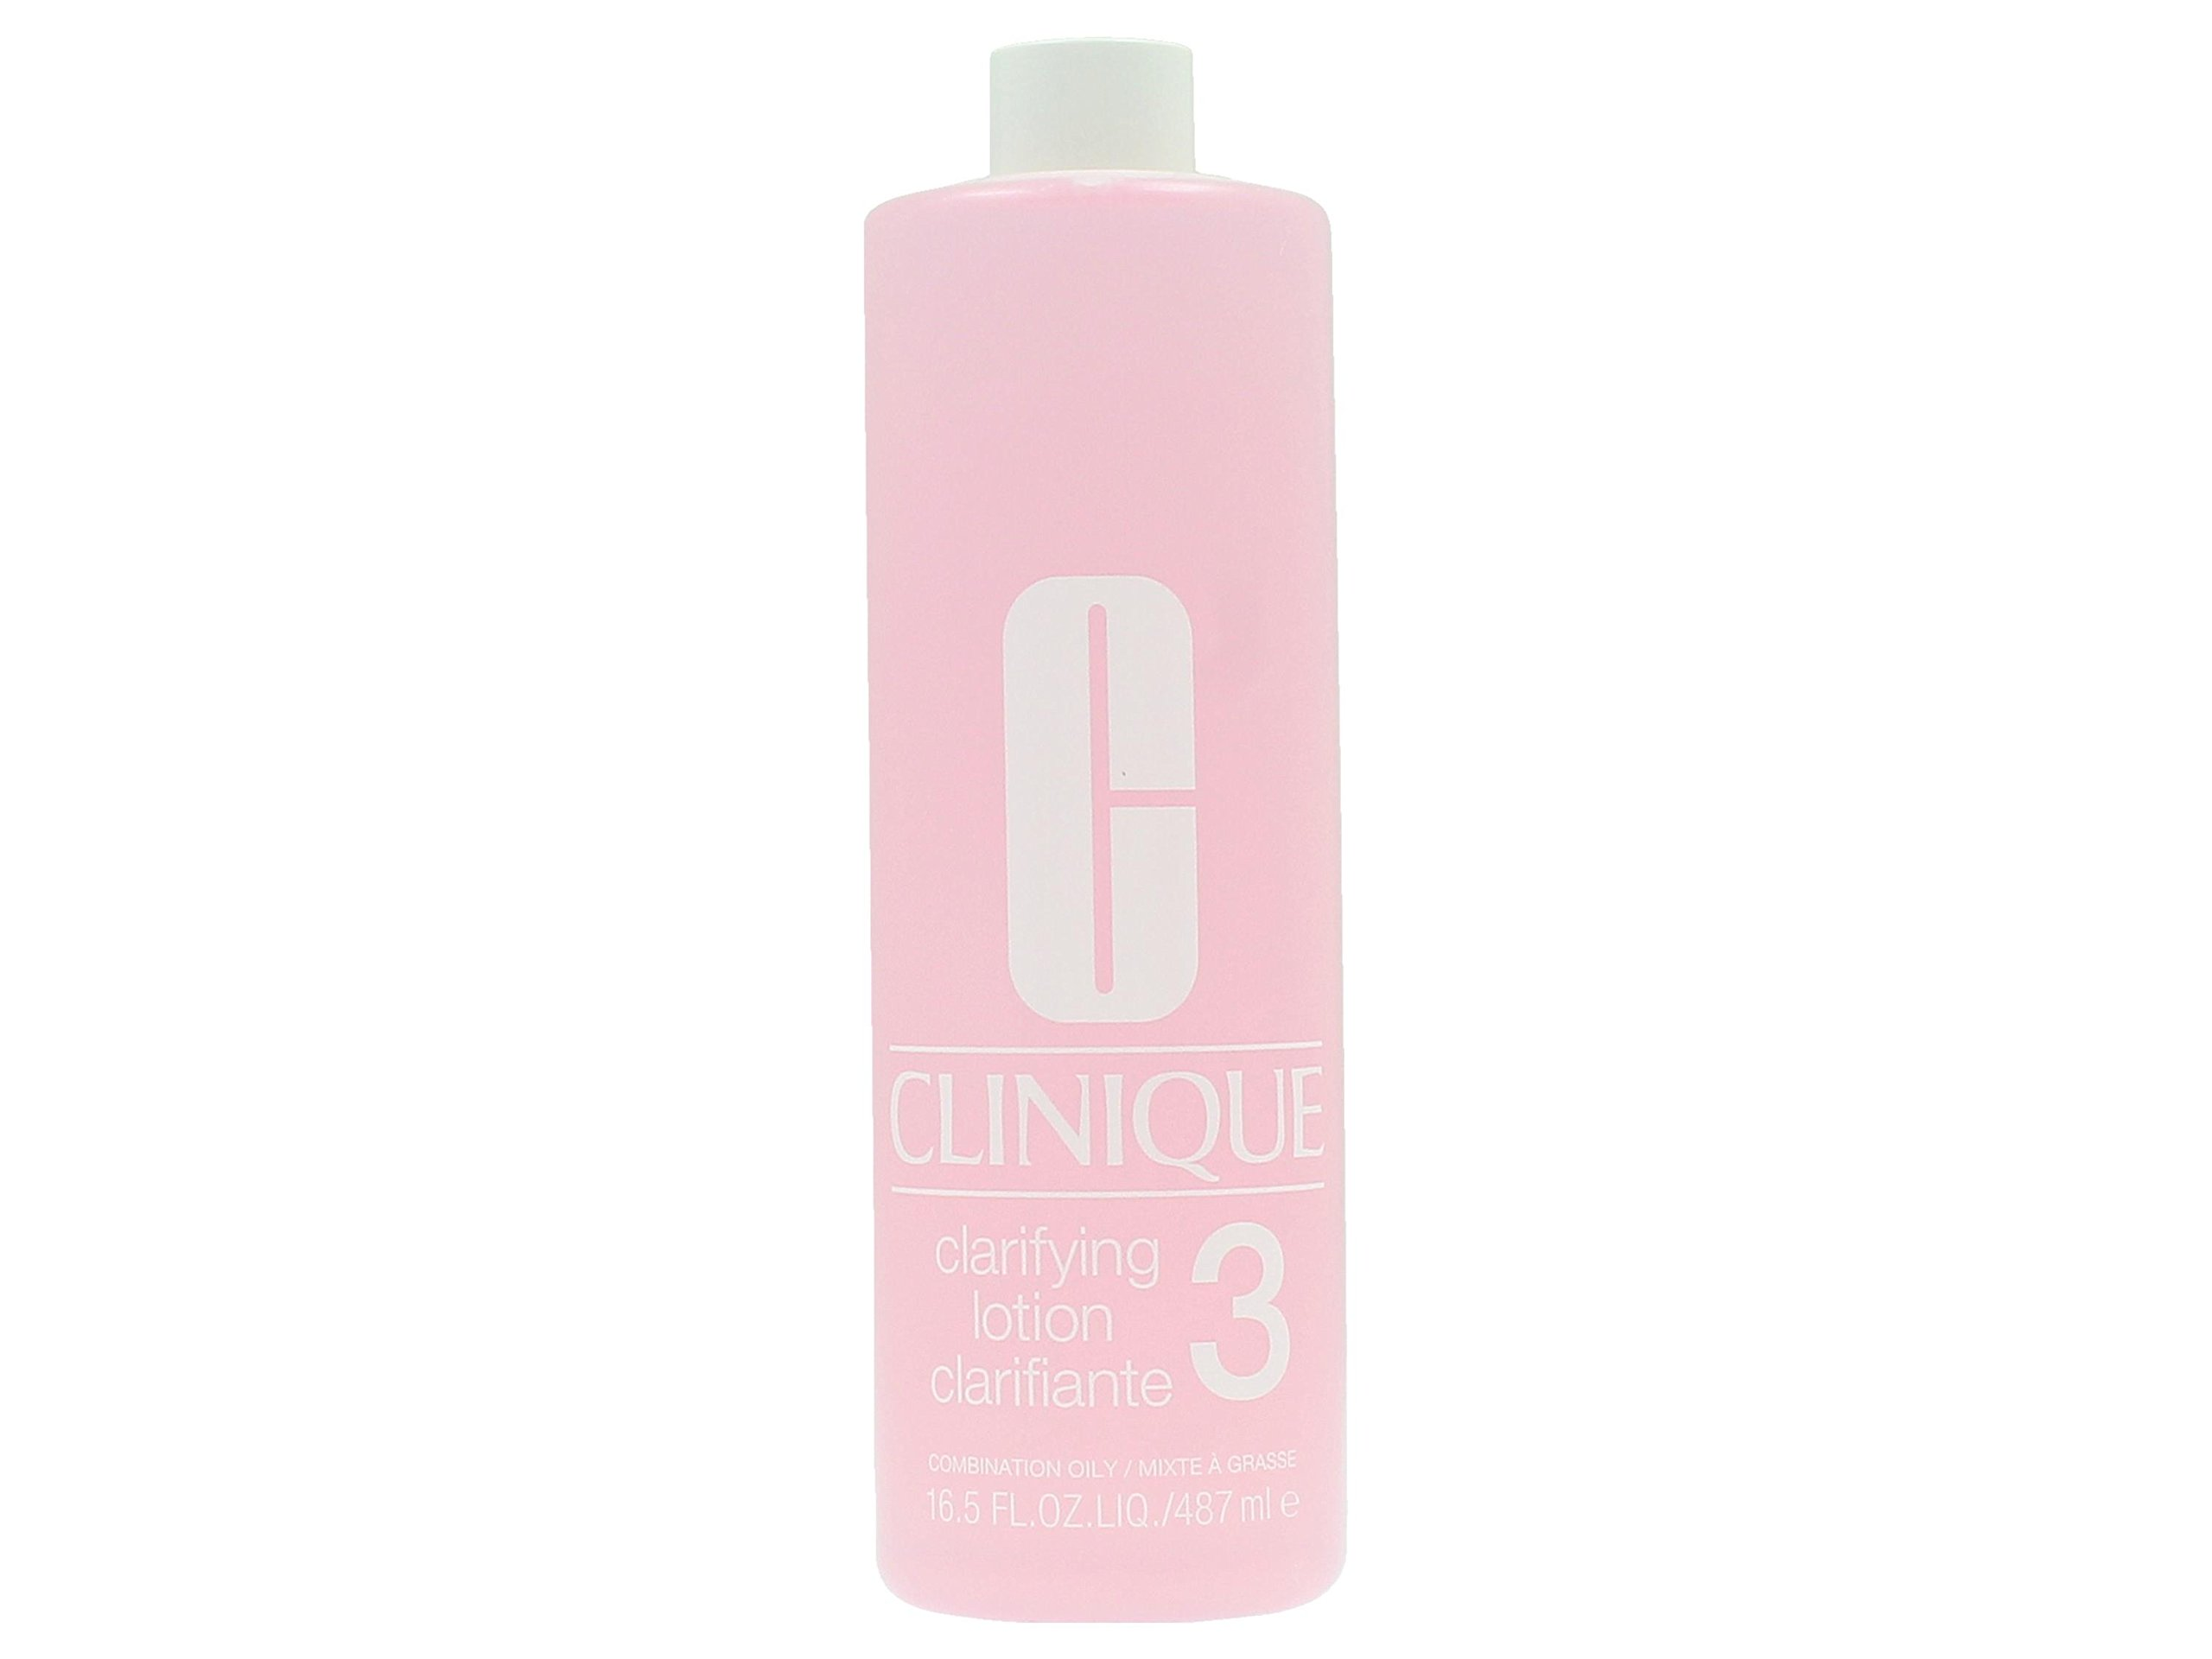 Clinique Clarifying Lotion Skin Type 3 Combination To Oily Skin 16.5 Ounce Includes Pump by Clinique